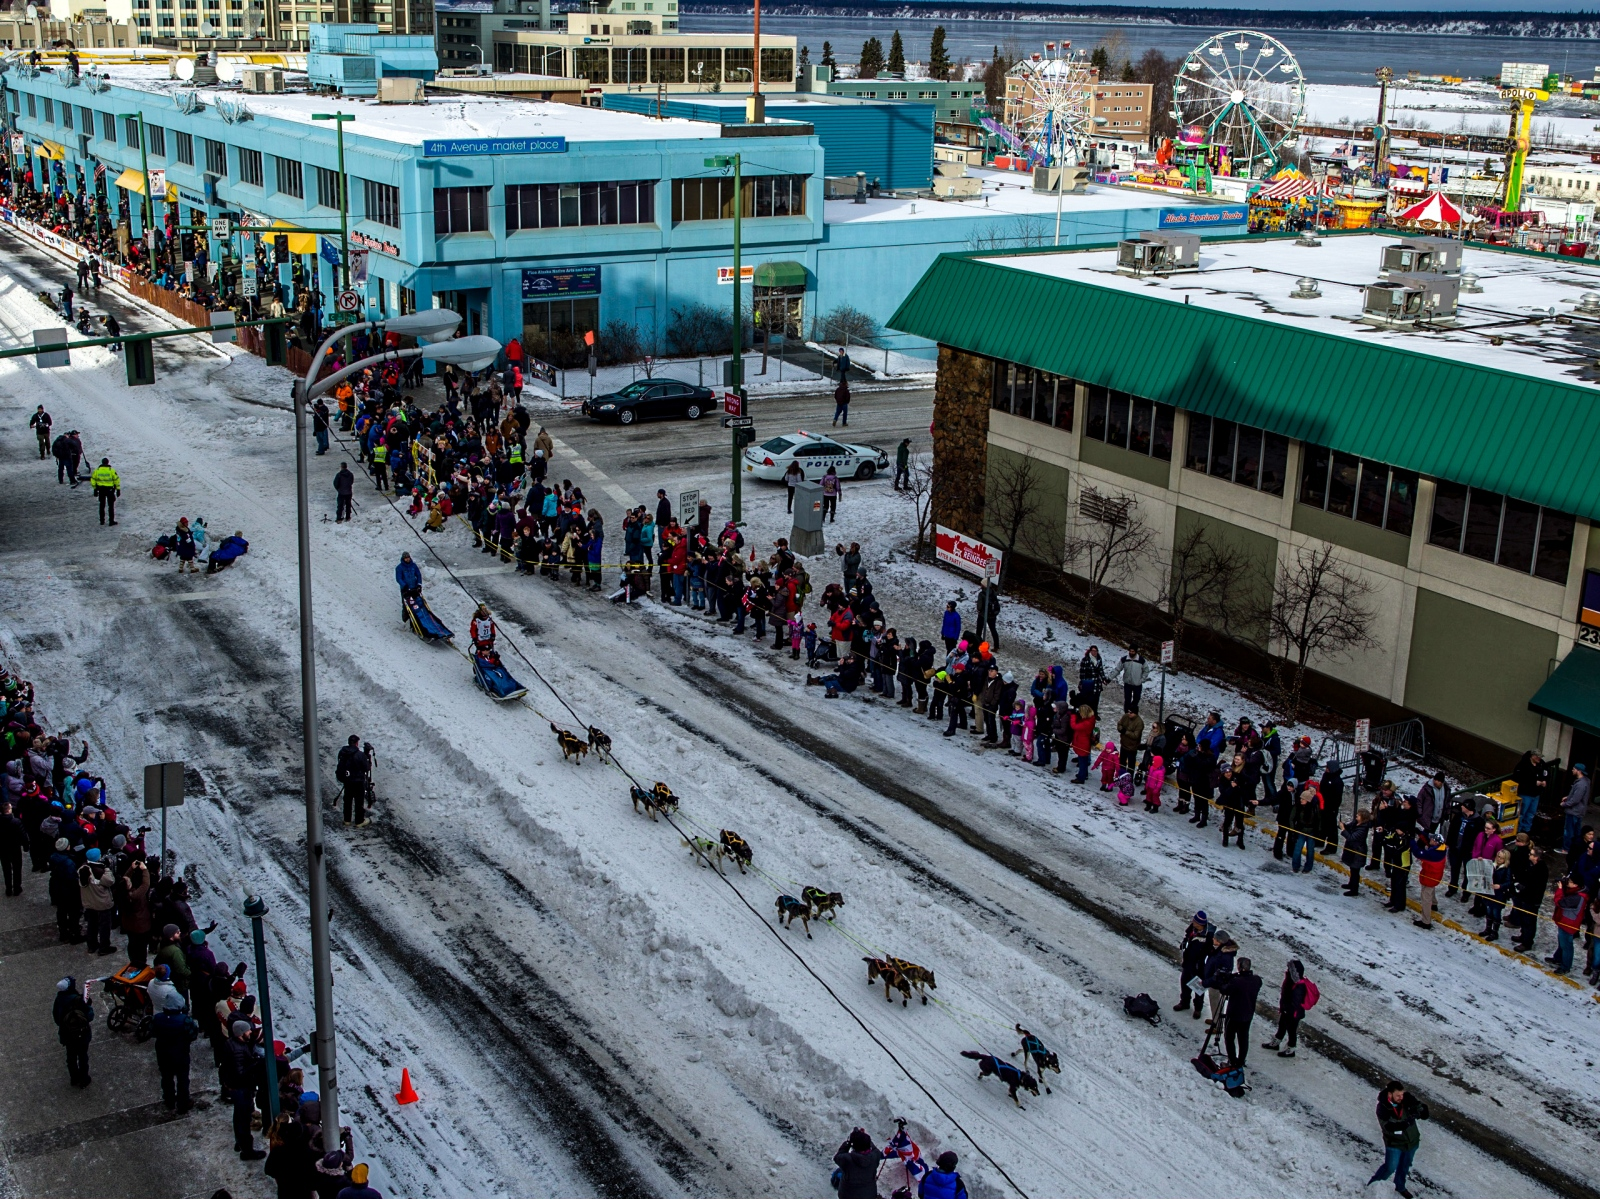 Sigrid Ekran mushes her team down 5th Avenue in Anchorage at the 2016 ceremonial Iditarod start on March 5, 2016. Due to lack of snow, snow was brought in by trucks and train days prior to the event, and the traditional 11-mile course was shortened to 3 miles.